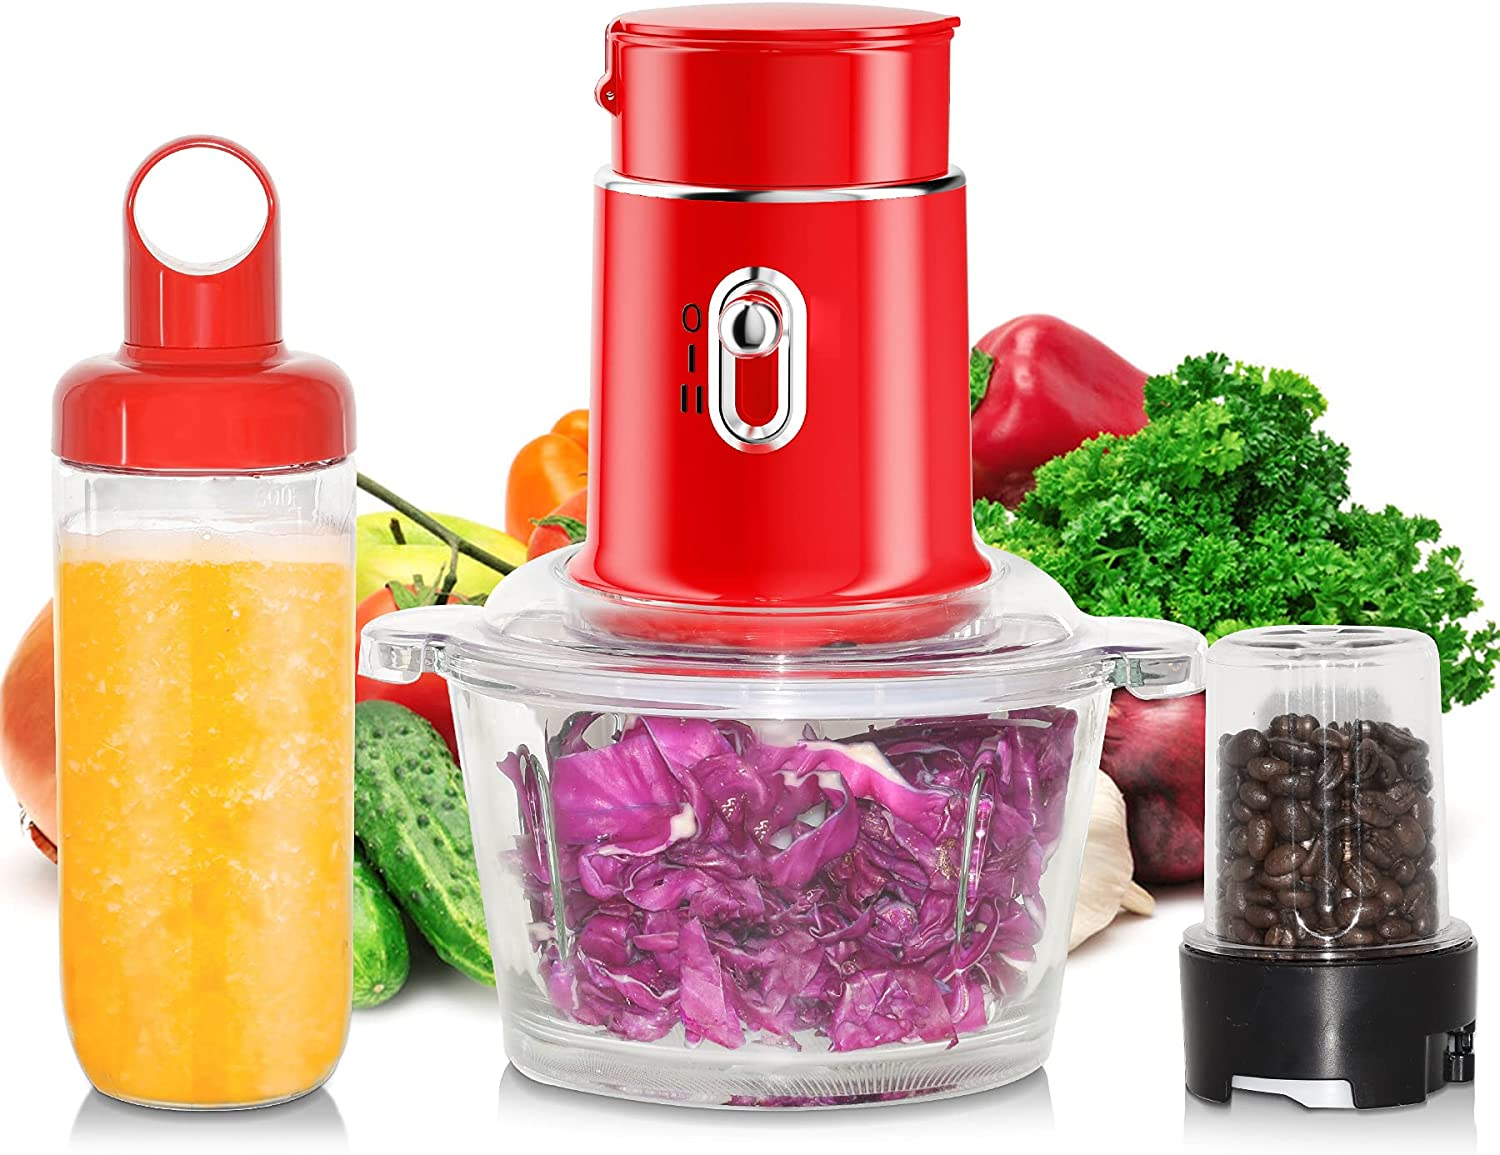 Food Processor Blender Combo - Electric Vegetable Chopper, 3 in 1 High Speed Smoothie Blender, 250W Food Chopper for Meat Fruits with 1.5L Glass Bowl, Coffee Grinder